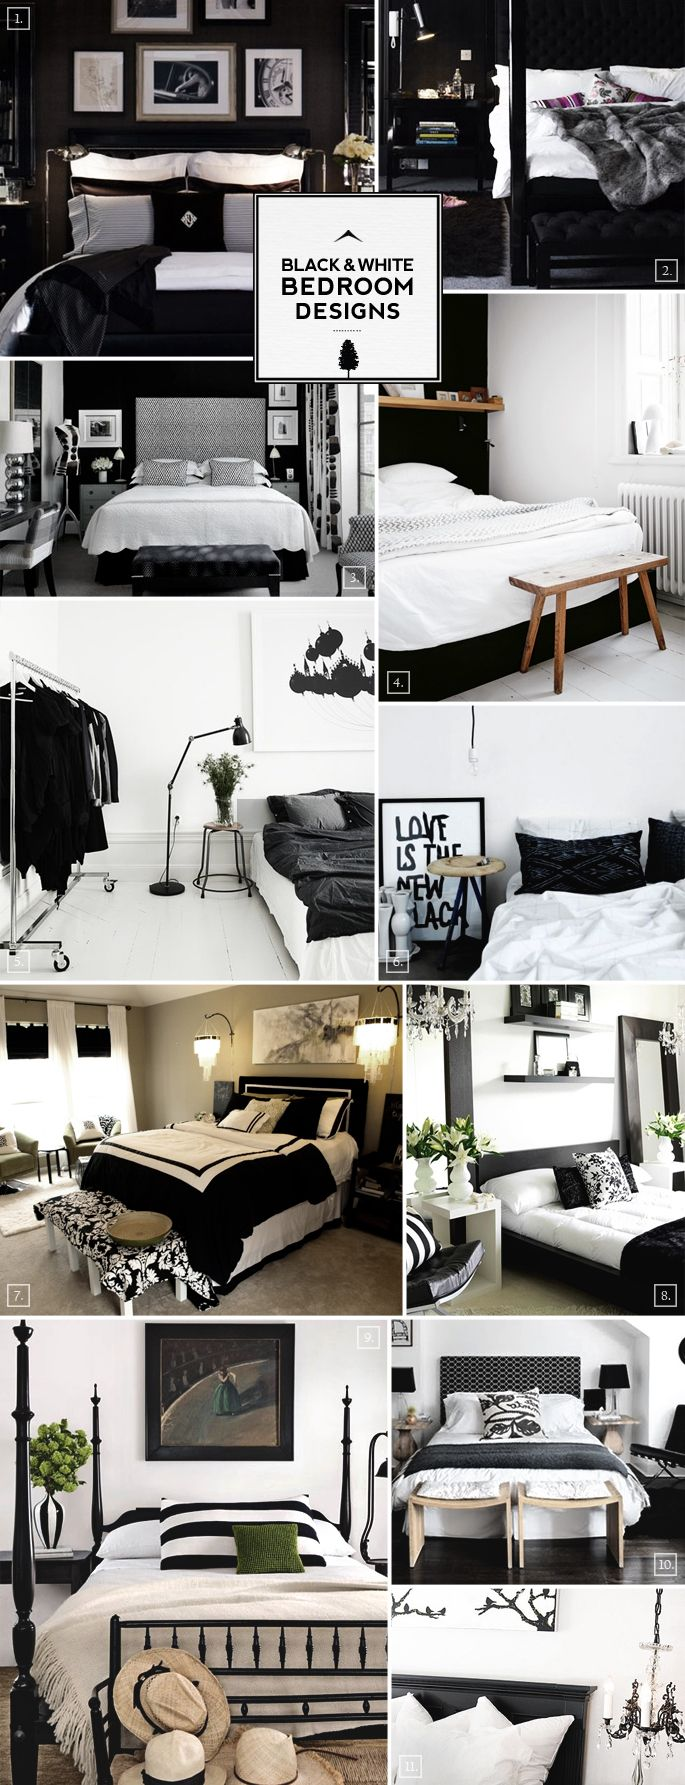 Black And White Bedroom Design Ideas Love The Close Rack Idea For My Green Room